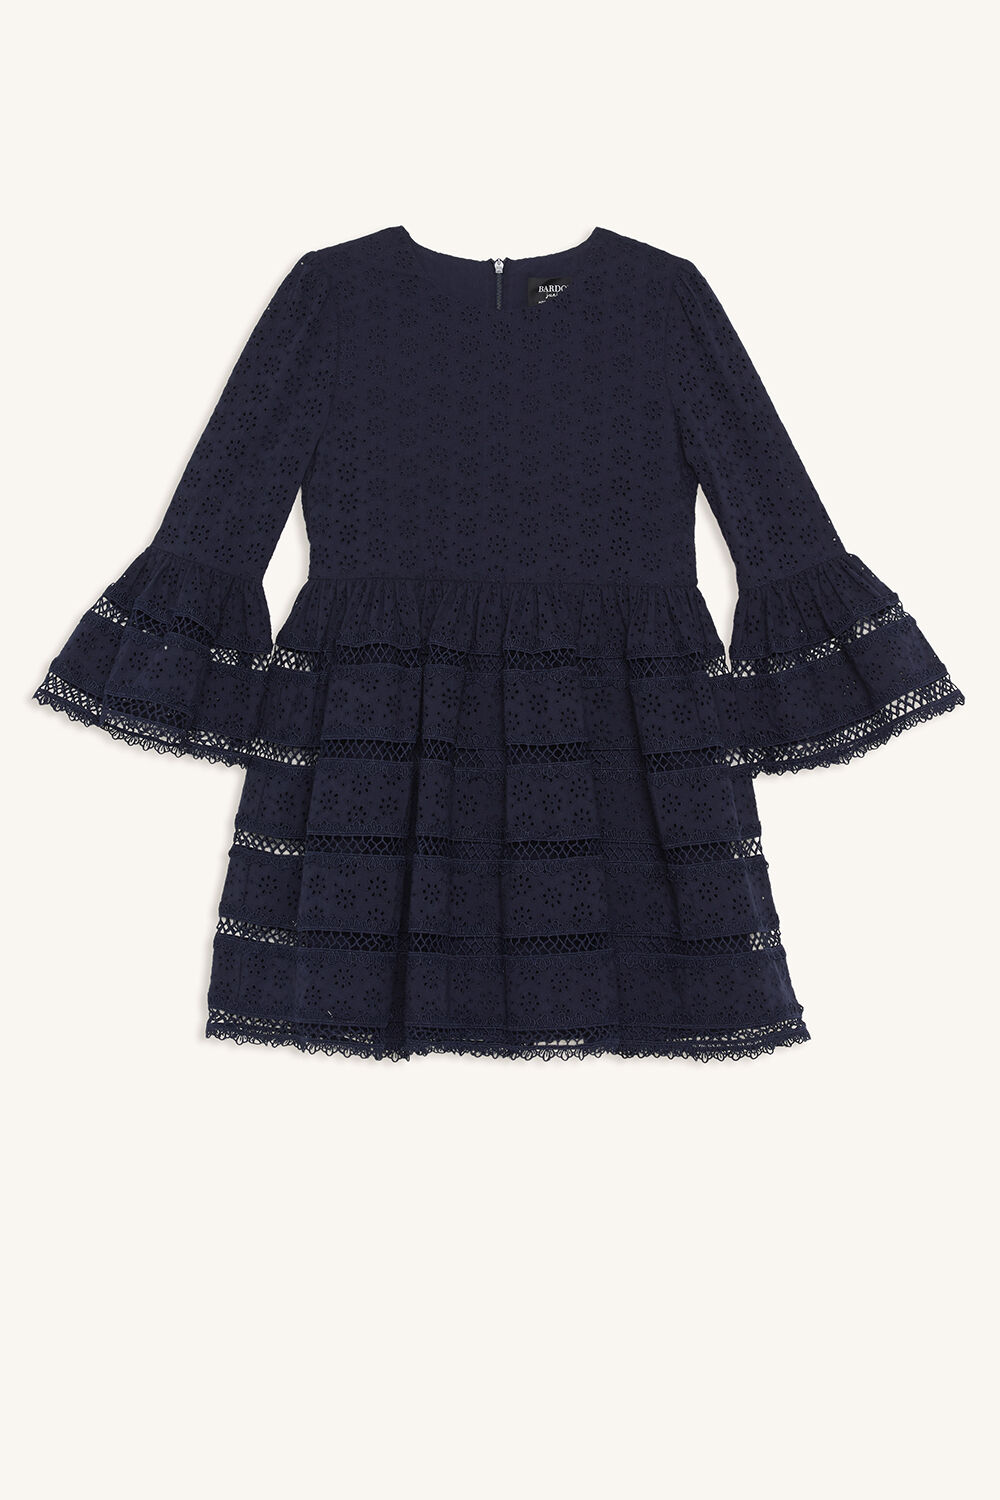 SELMA TRIM DRESS in colour MARITIME BLUE